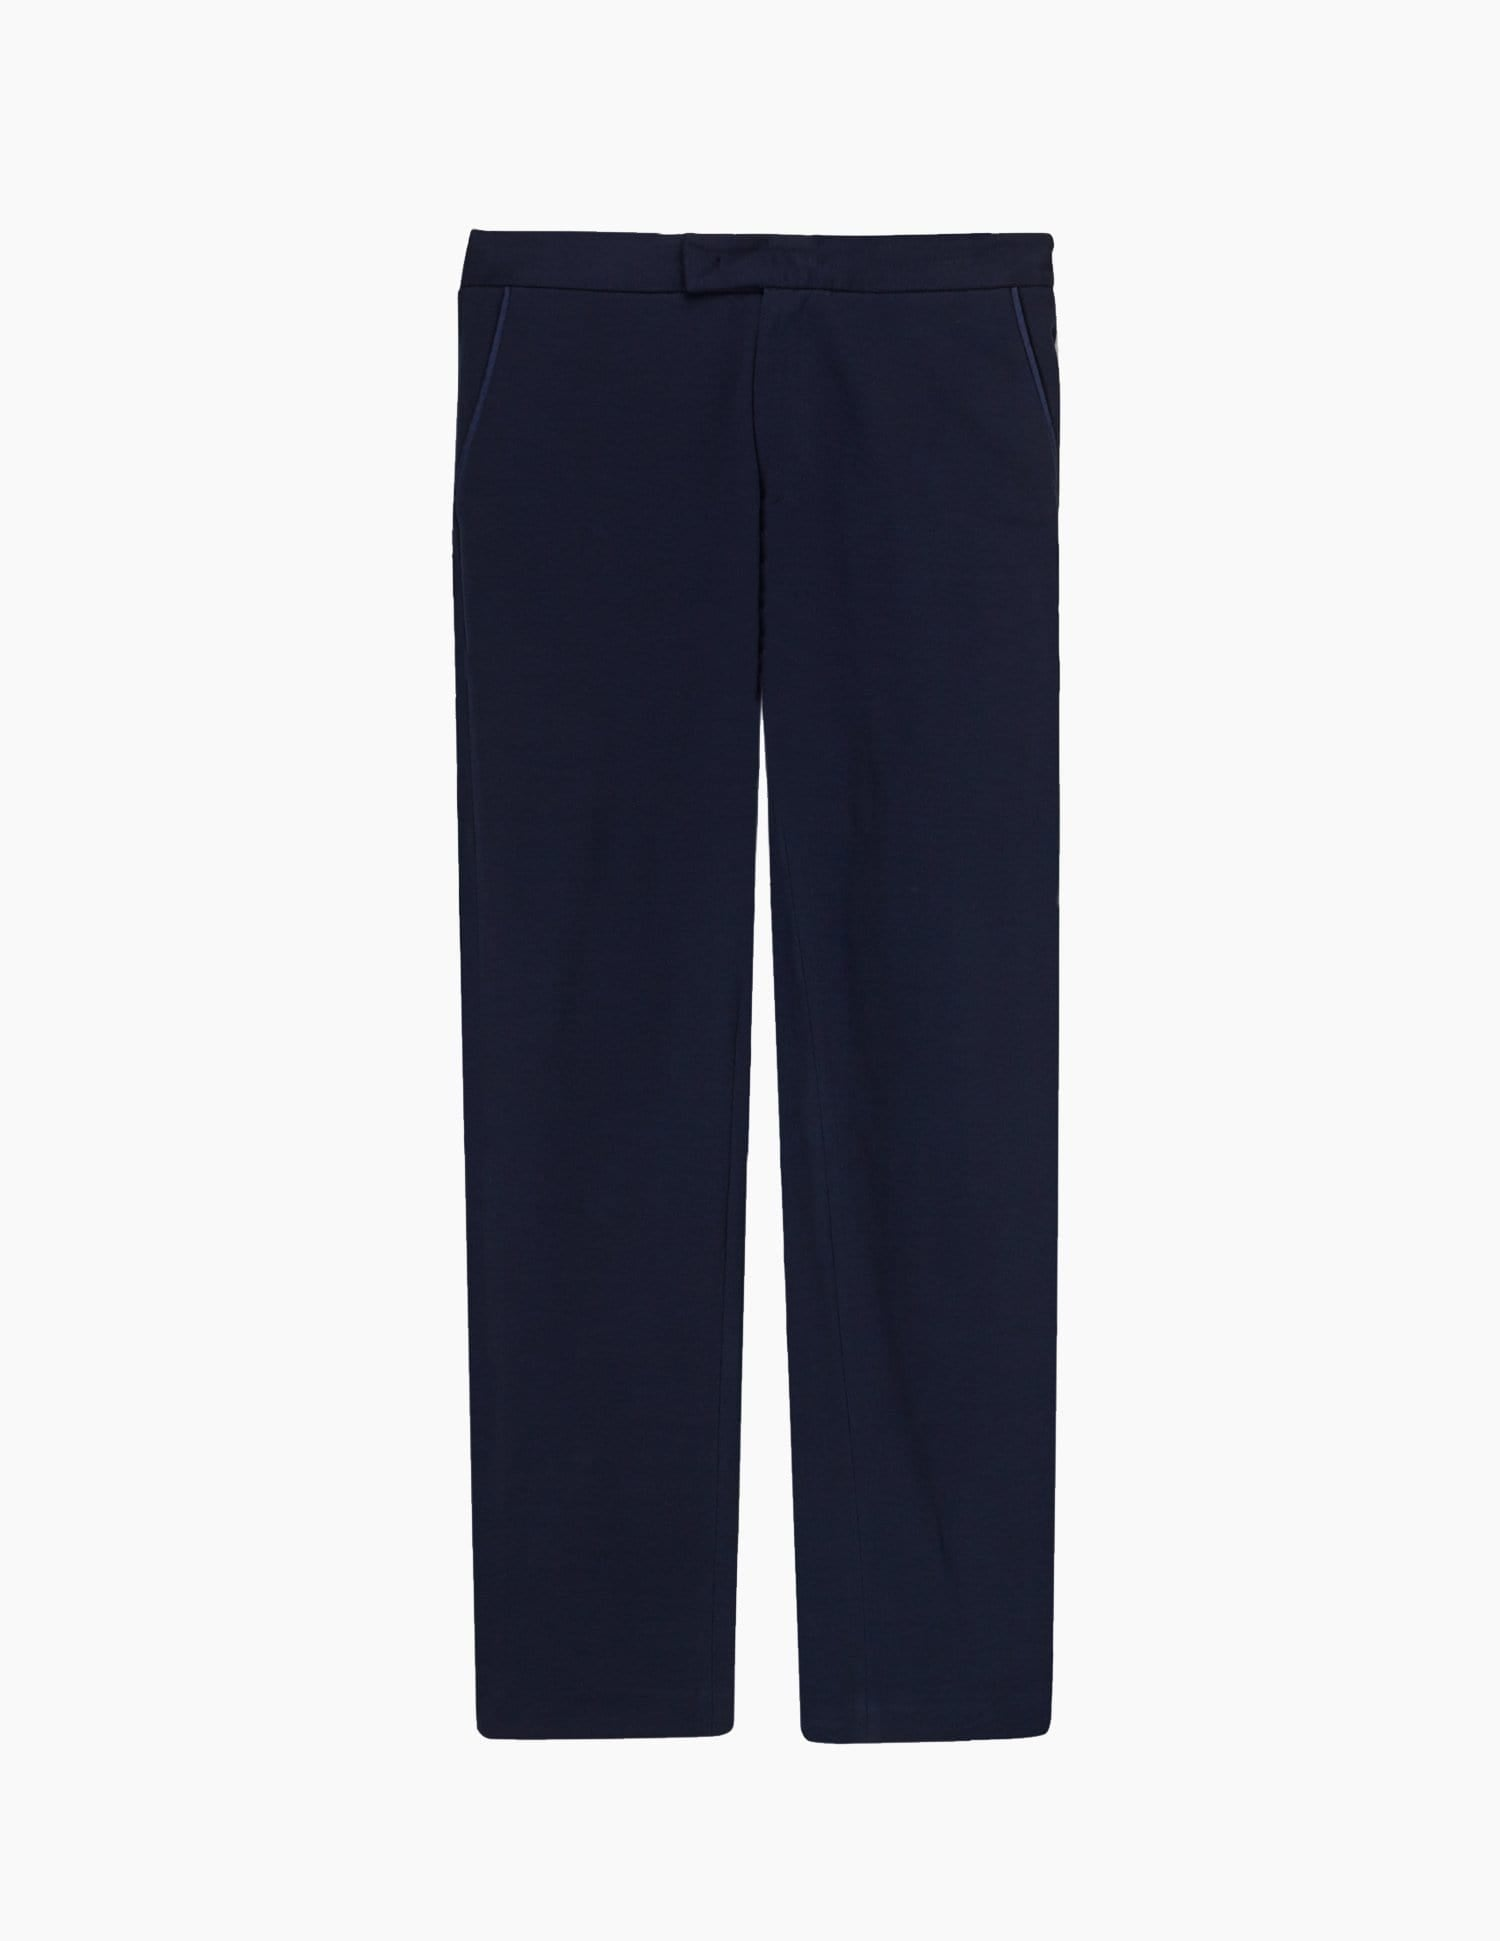 The 24 Trousers Heavyweight || Navy | Heavyweight Edition